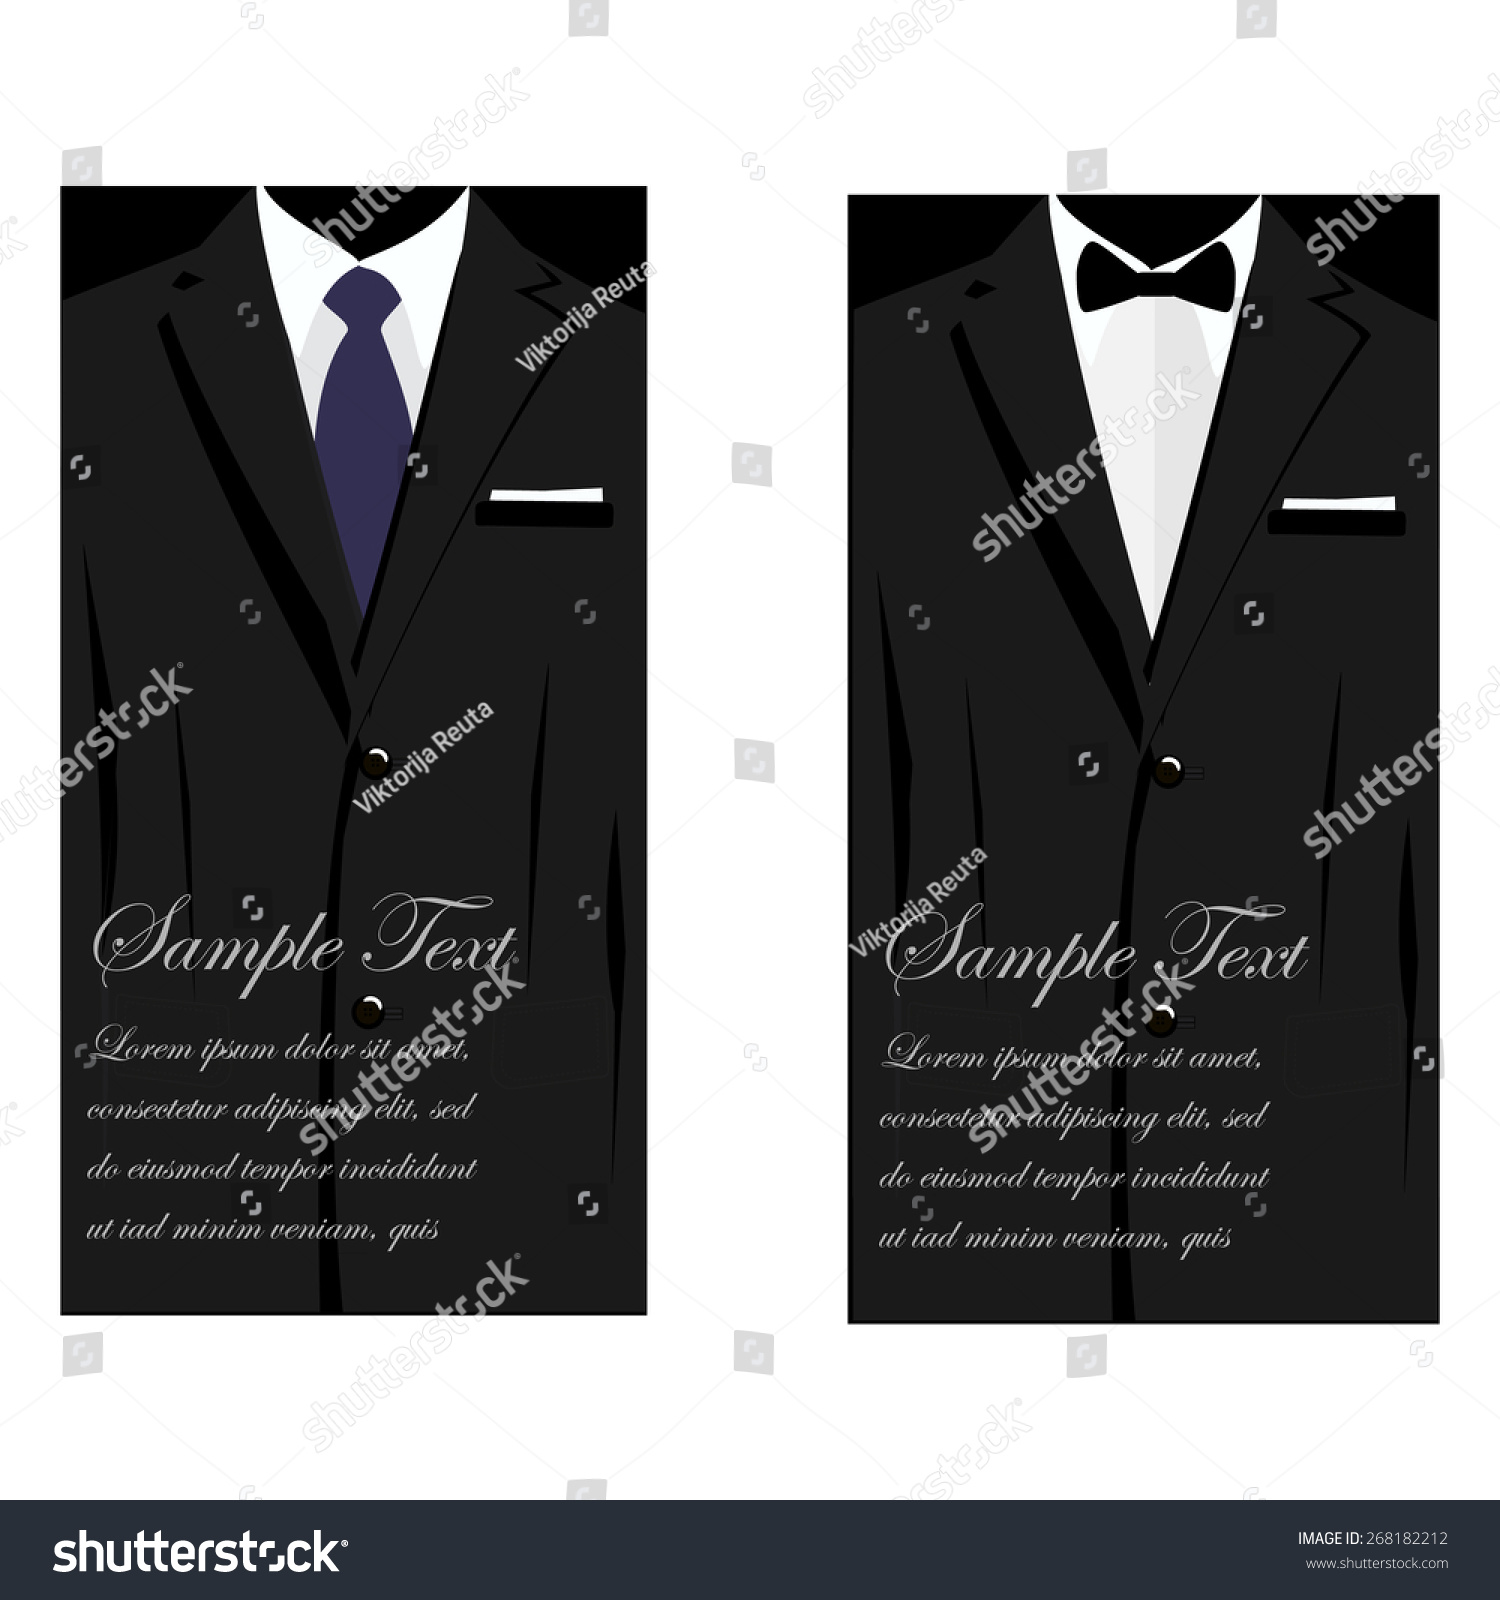 vector business cards elegant suit bowtie stock vector 268182212